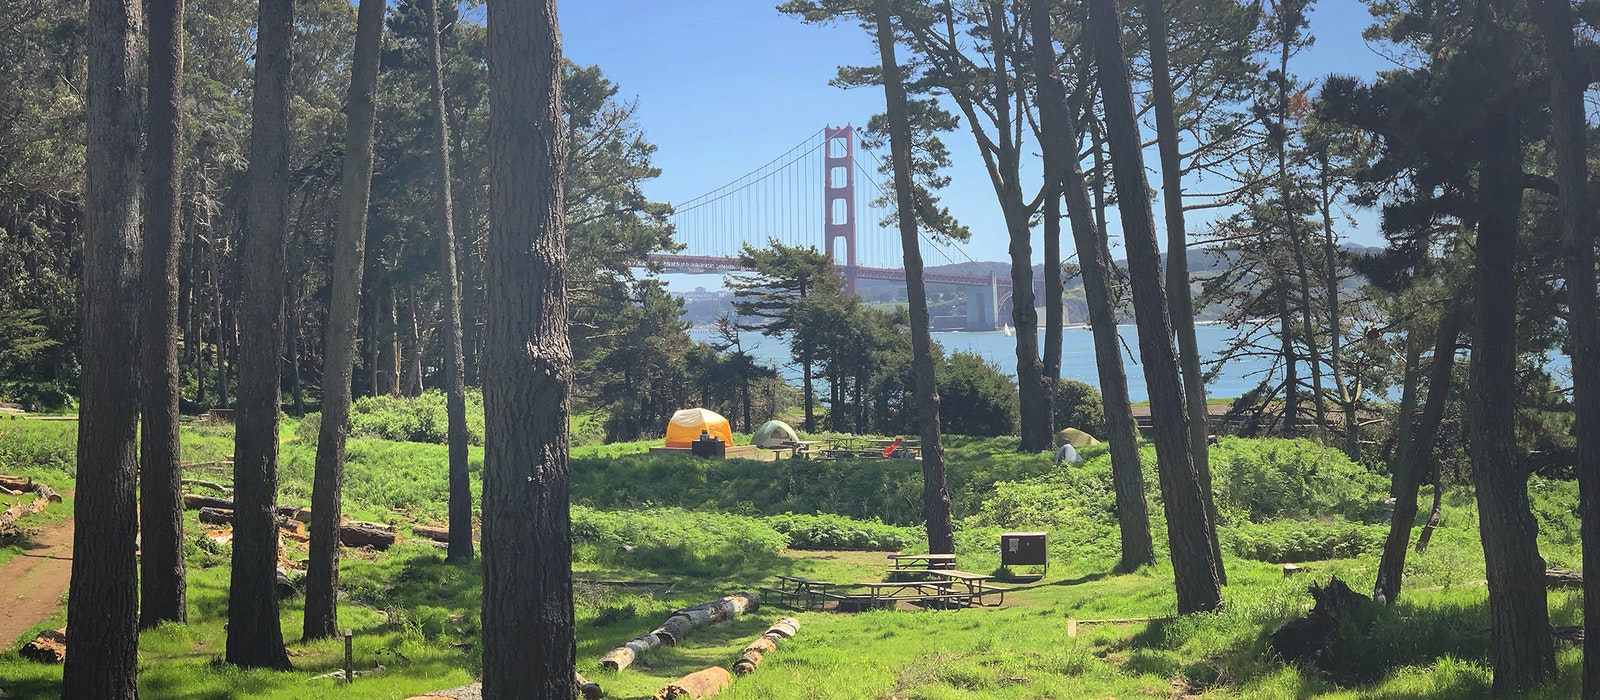 One of the best views in San Francisco is from the Kirby Cove Campground.